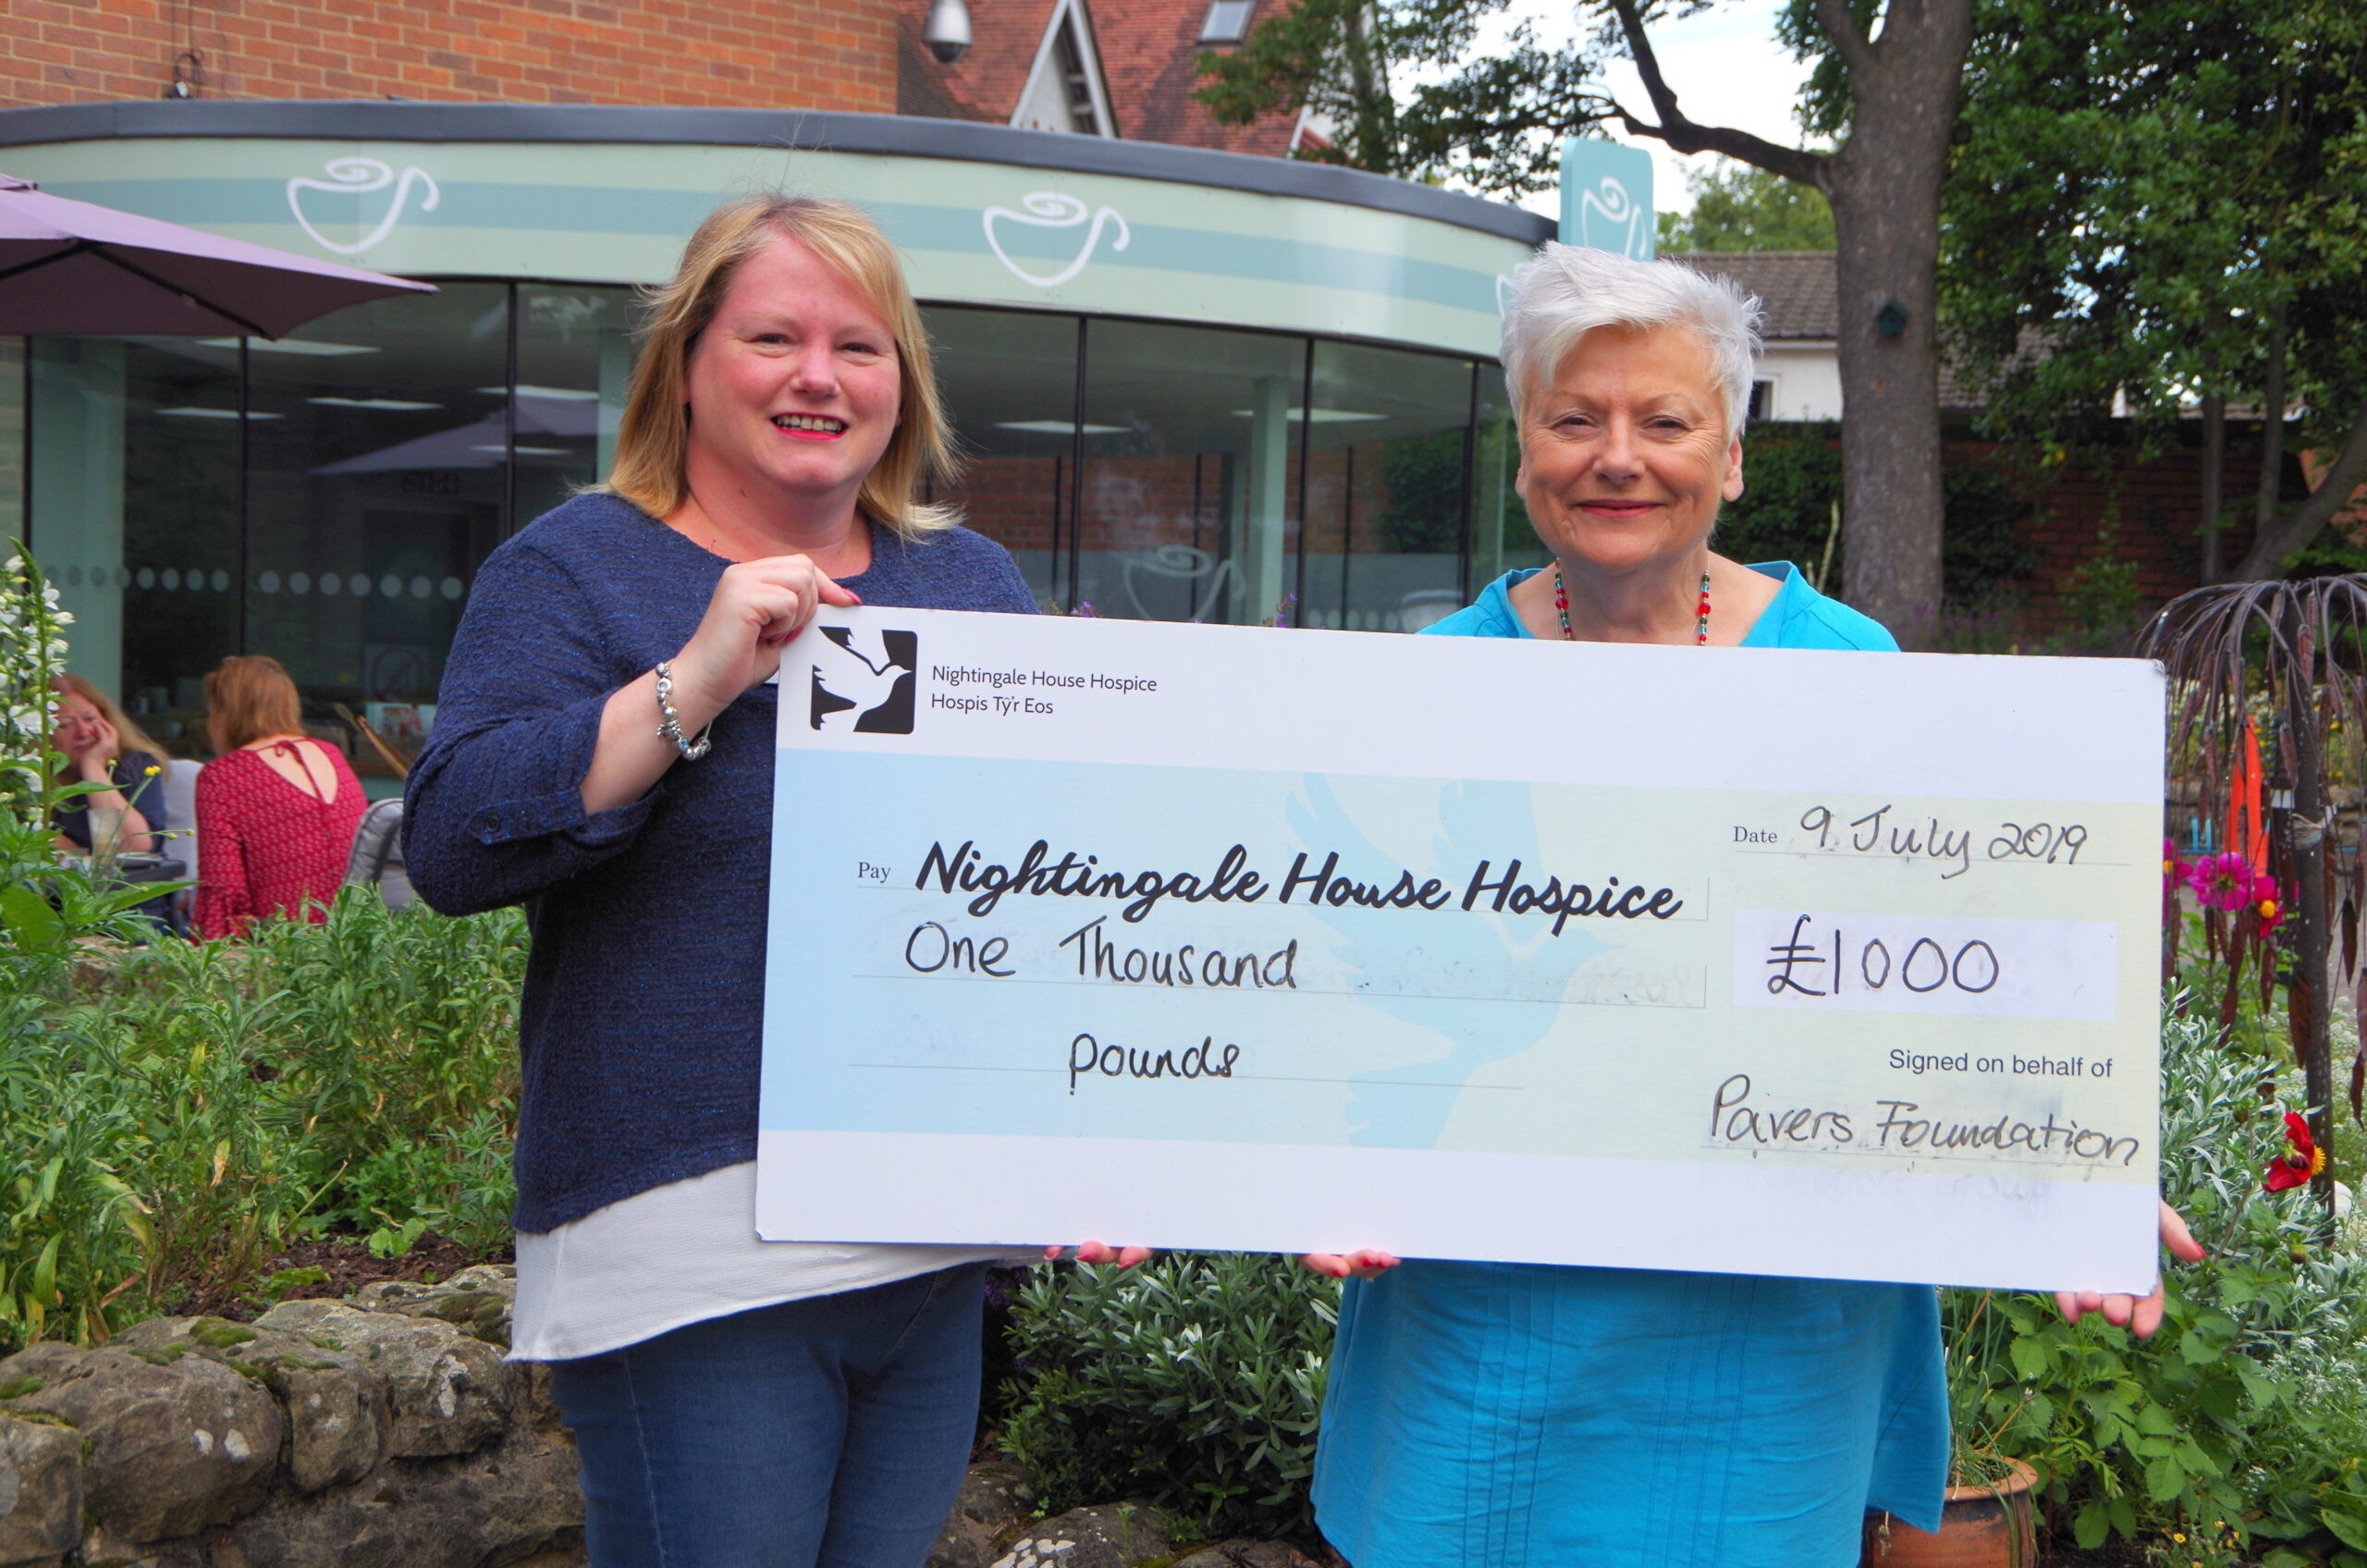 Nightingale House Hospice receives £1,000 to help with new Sunshine Room